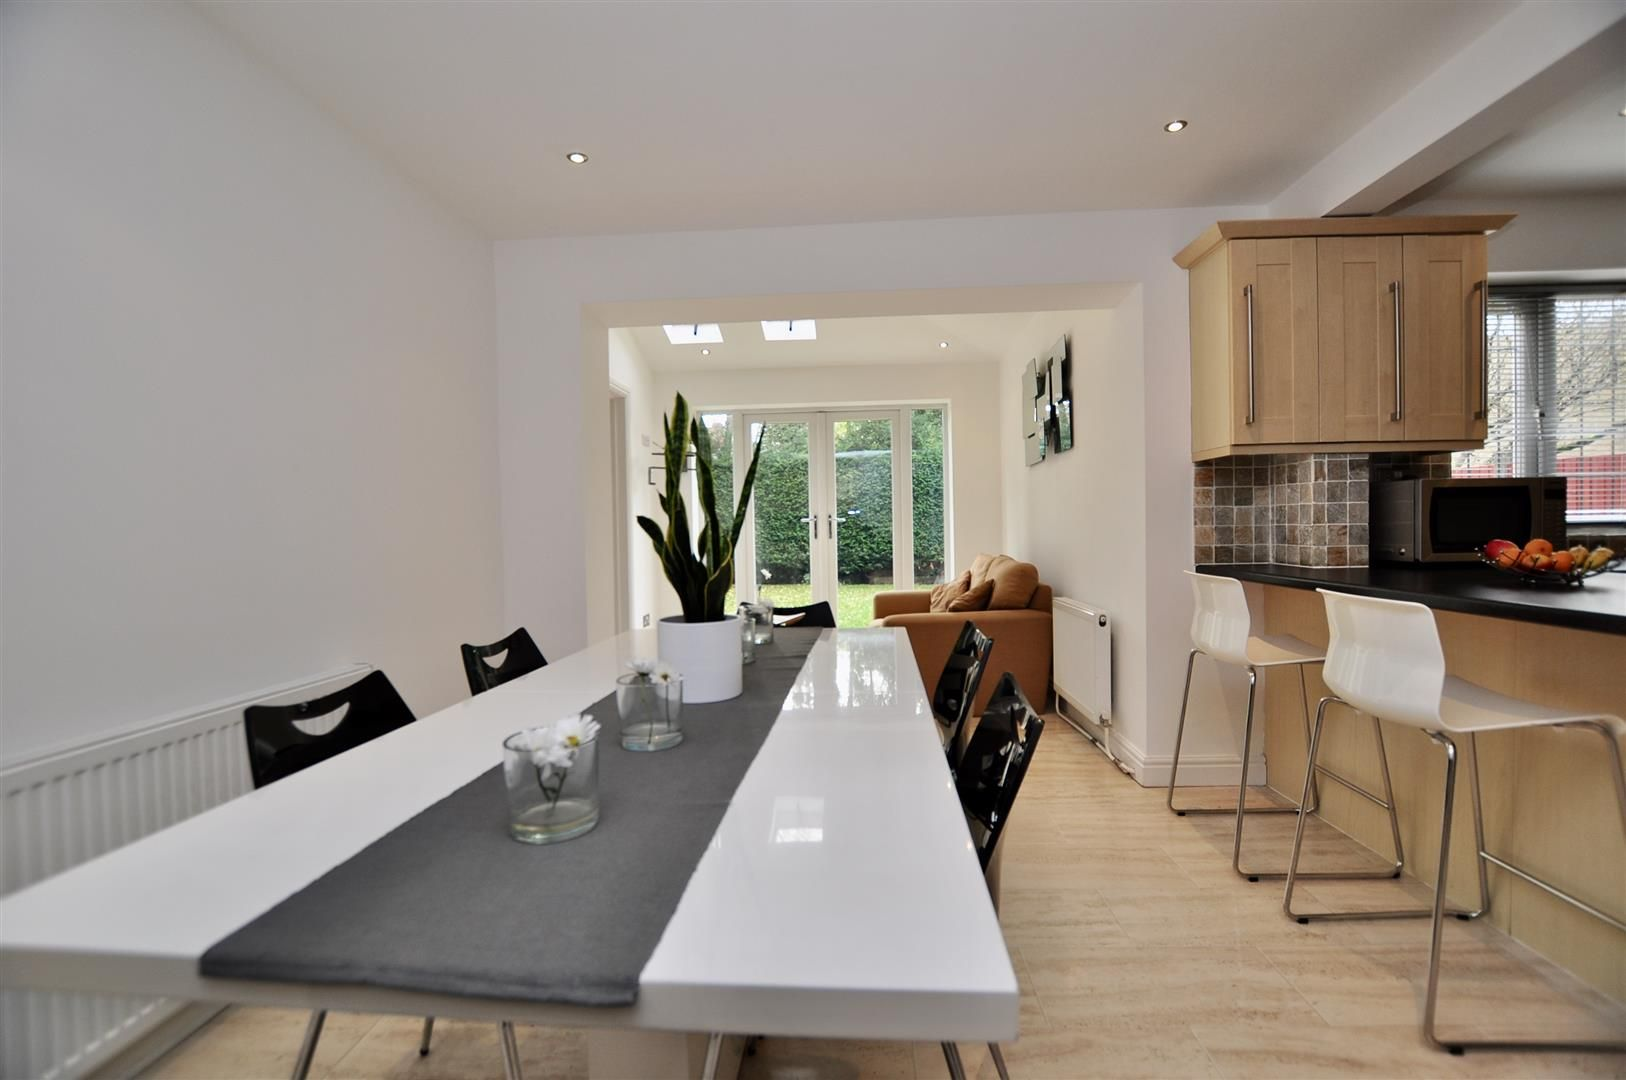 4 bed house for sale in Hagley 7